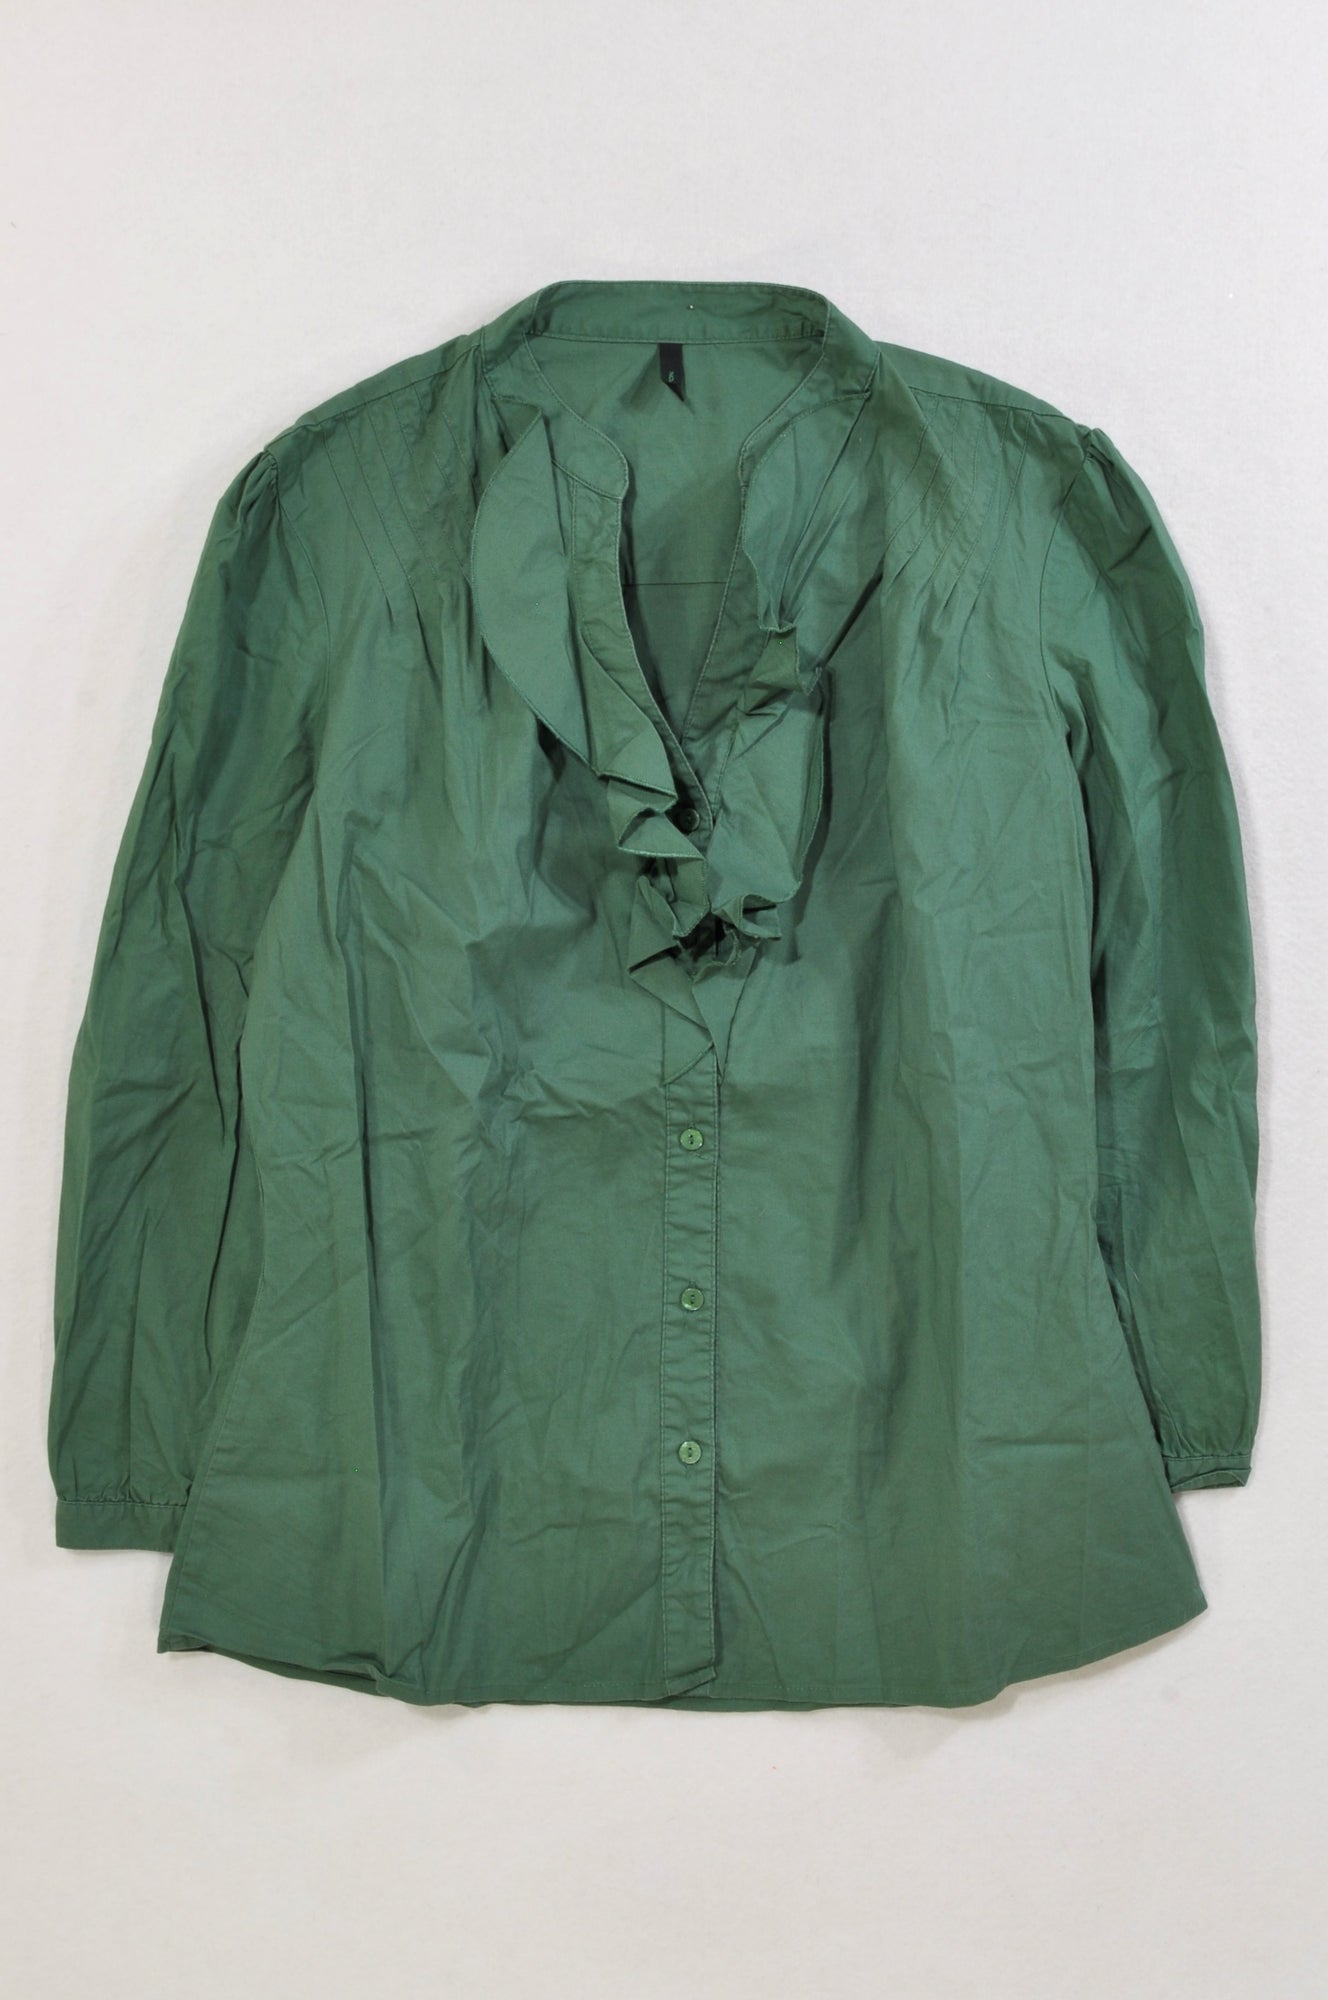 United Colours of Benetton Pine Green Ruffle Detail Three-quarter Sleeve Shirt Women Size M